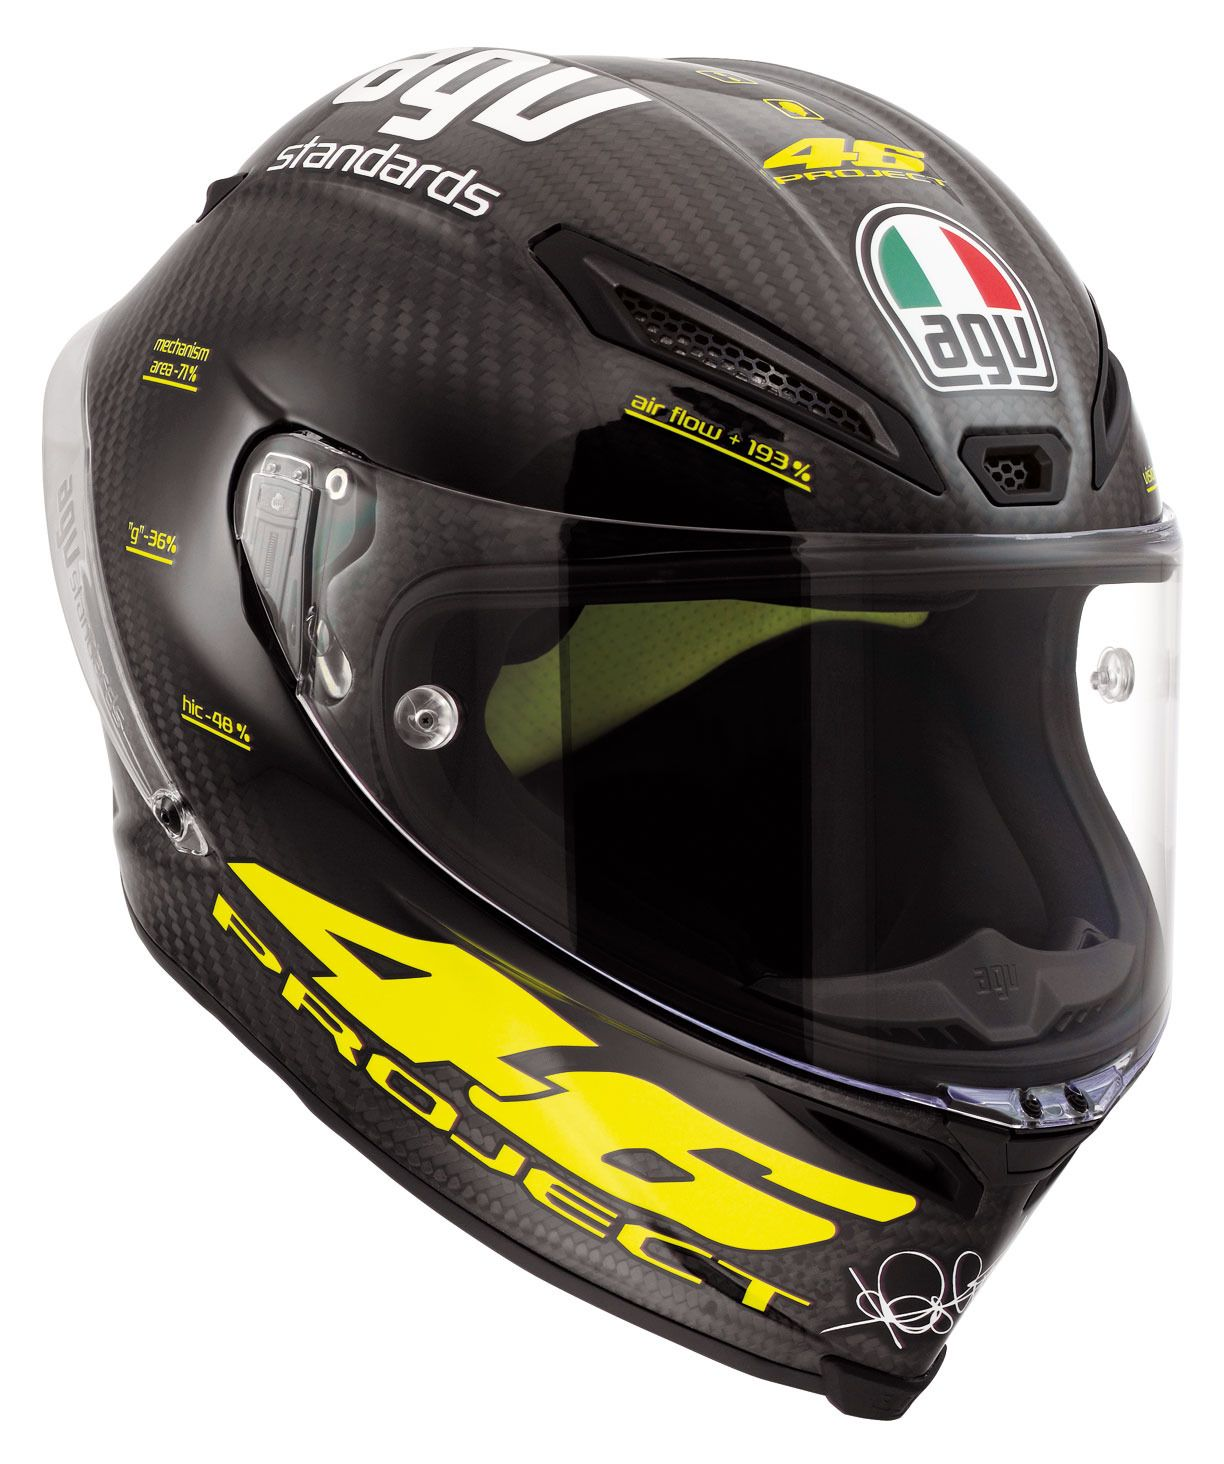 agv pista gp helmet revzilla. Black Bedroom Furniture Sets. Home Design Ideas